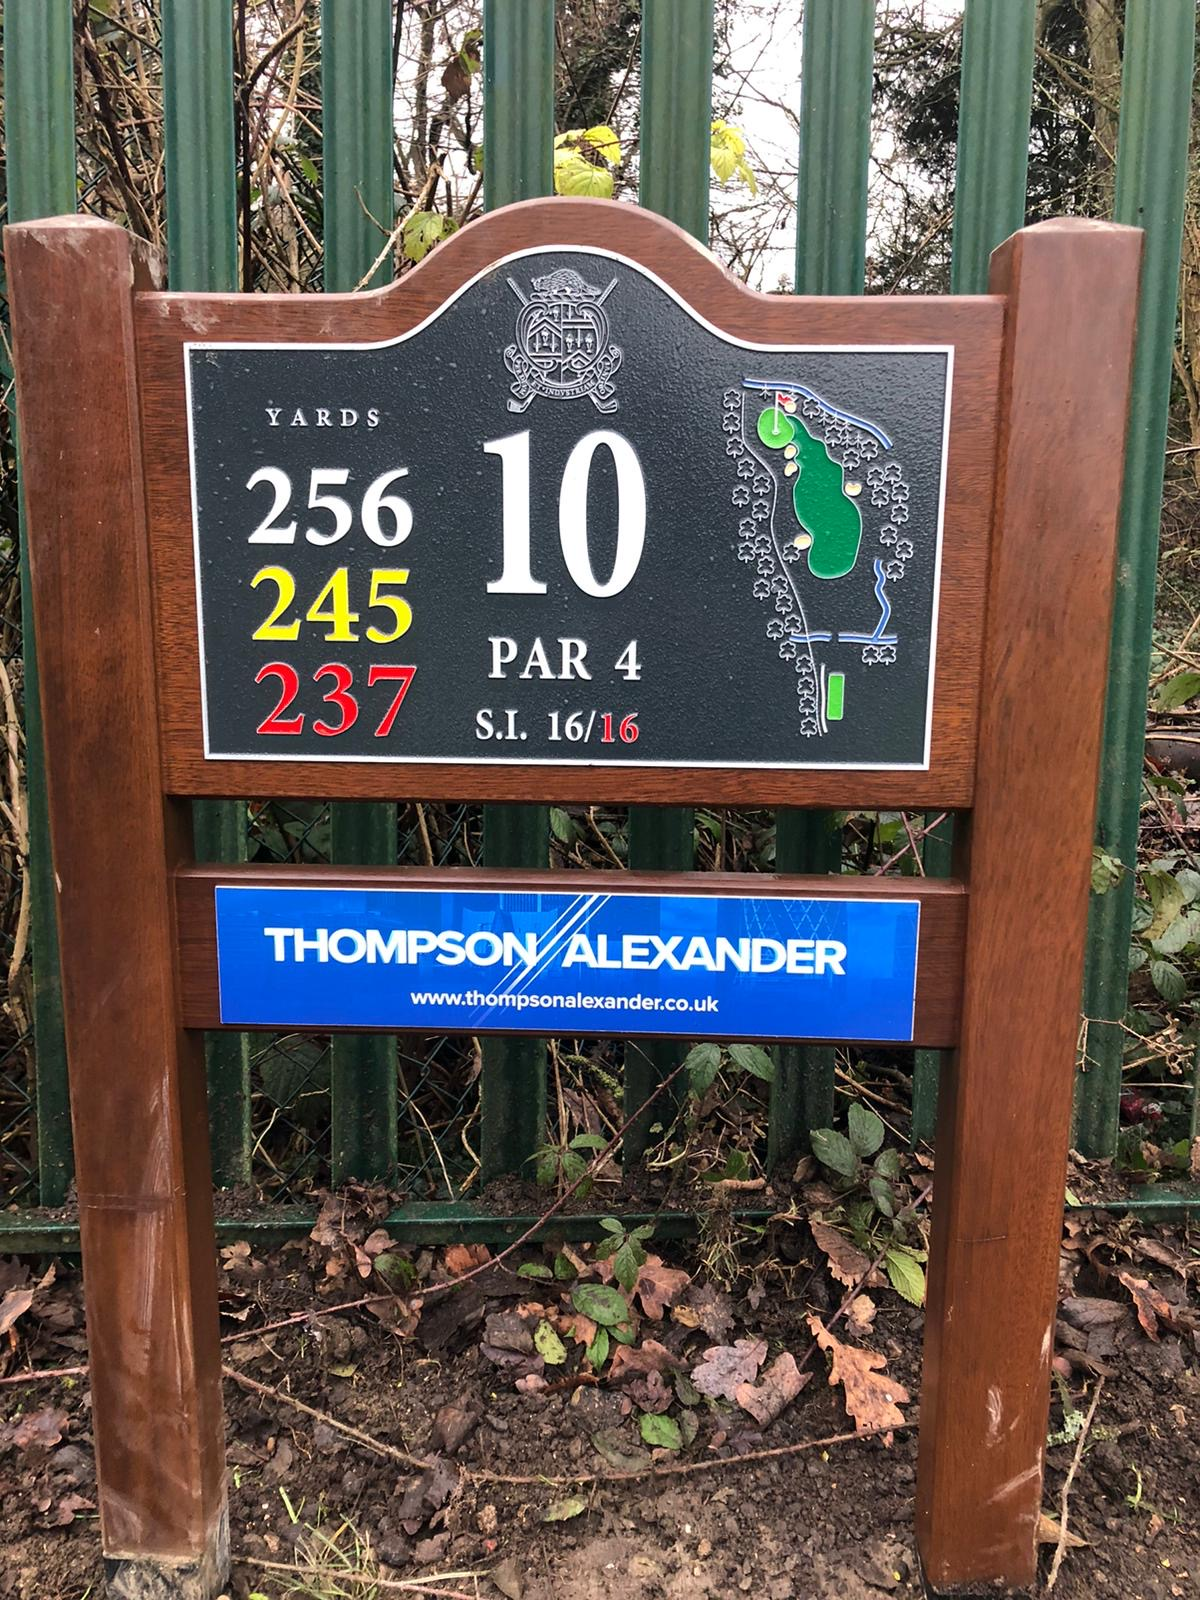 A close up of the 1oth hole sign at Finchley golf club. A dark brown sign with a black plaque and Thompson Alexander logo underneath.